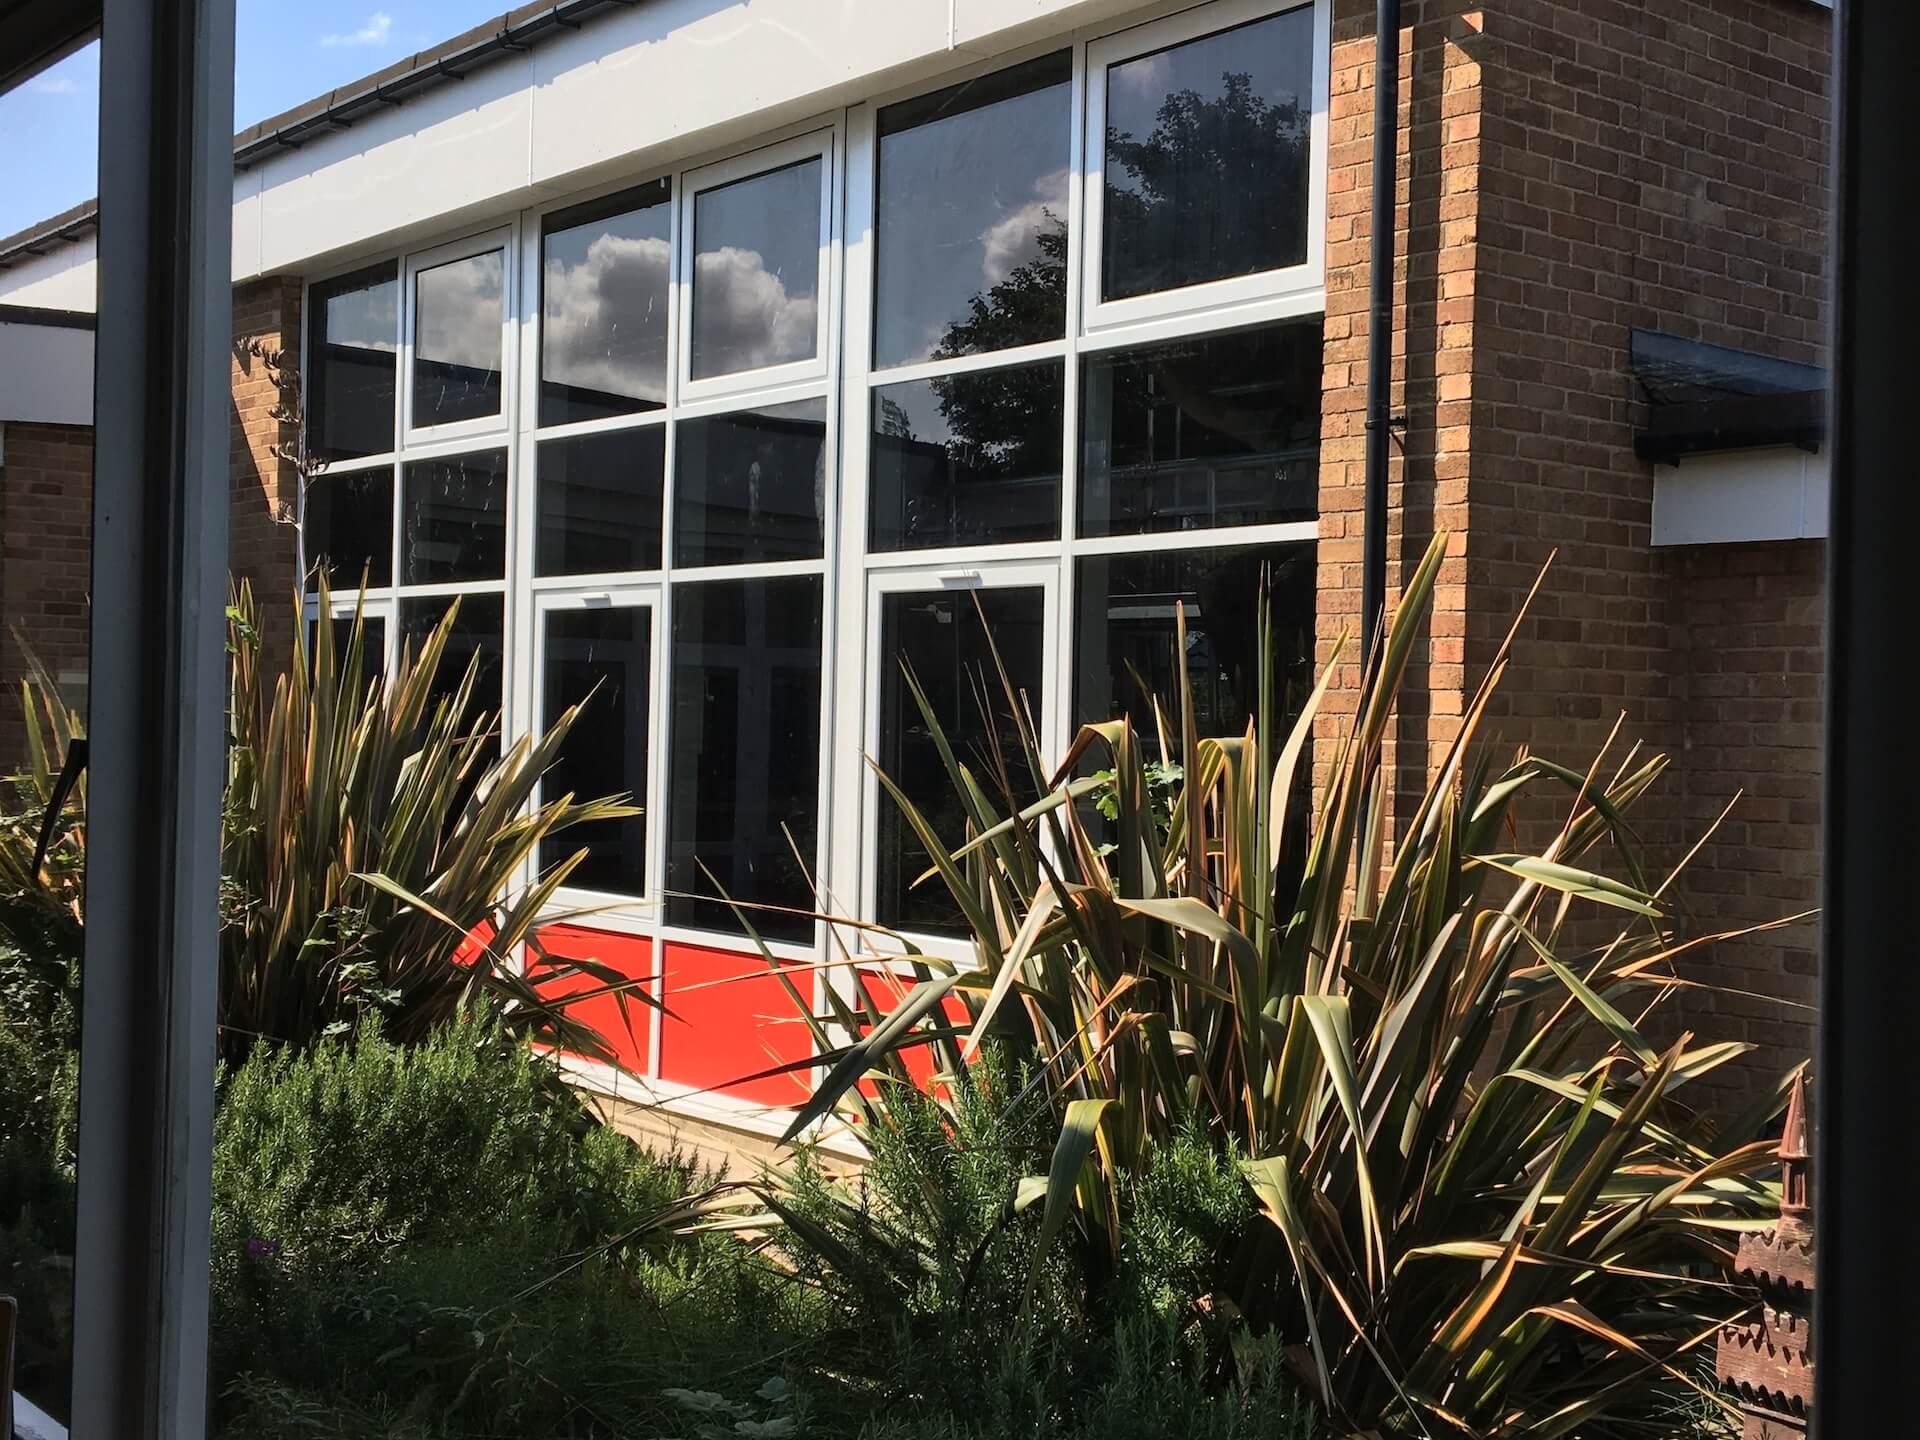 Enquire Learning Trust – Window Replacement Scheme 4